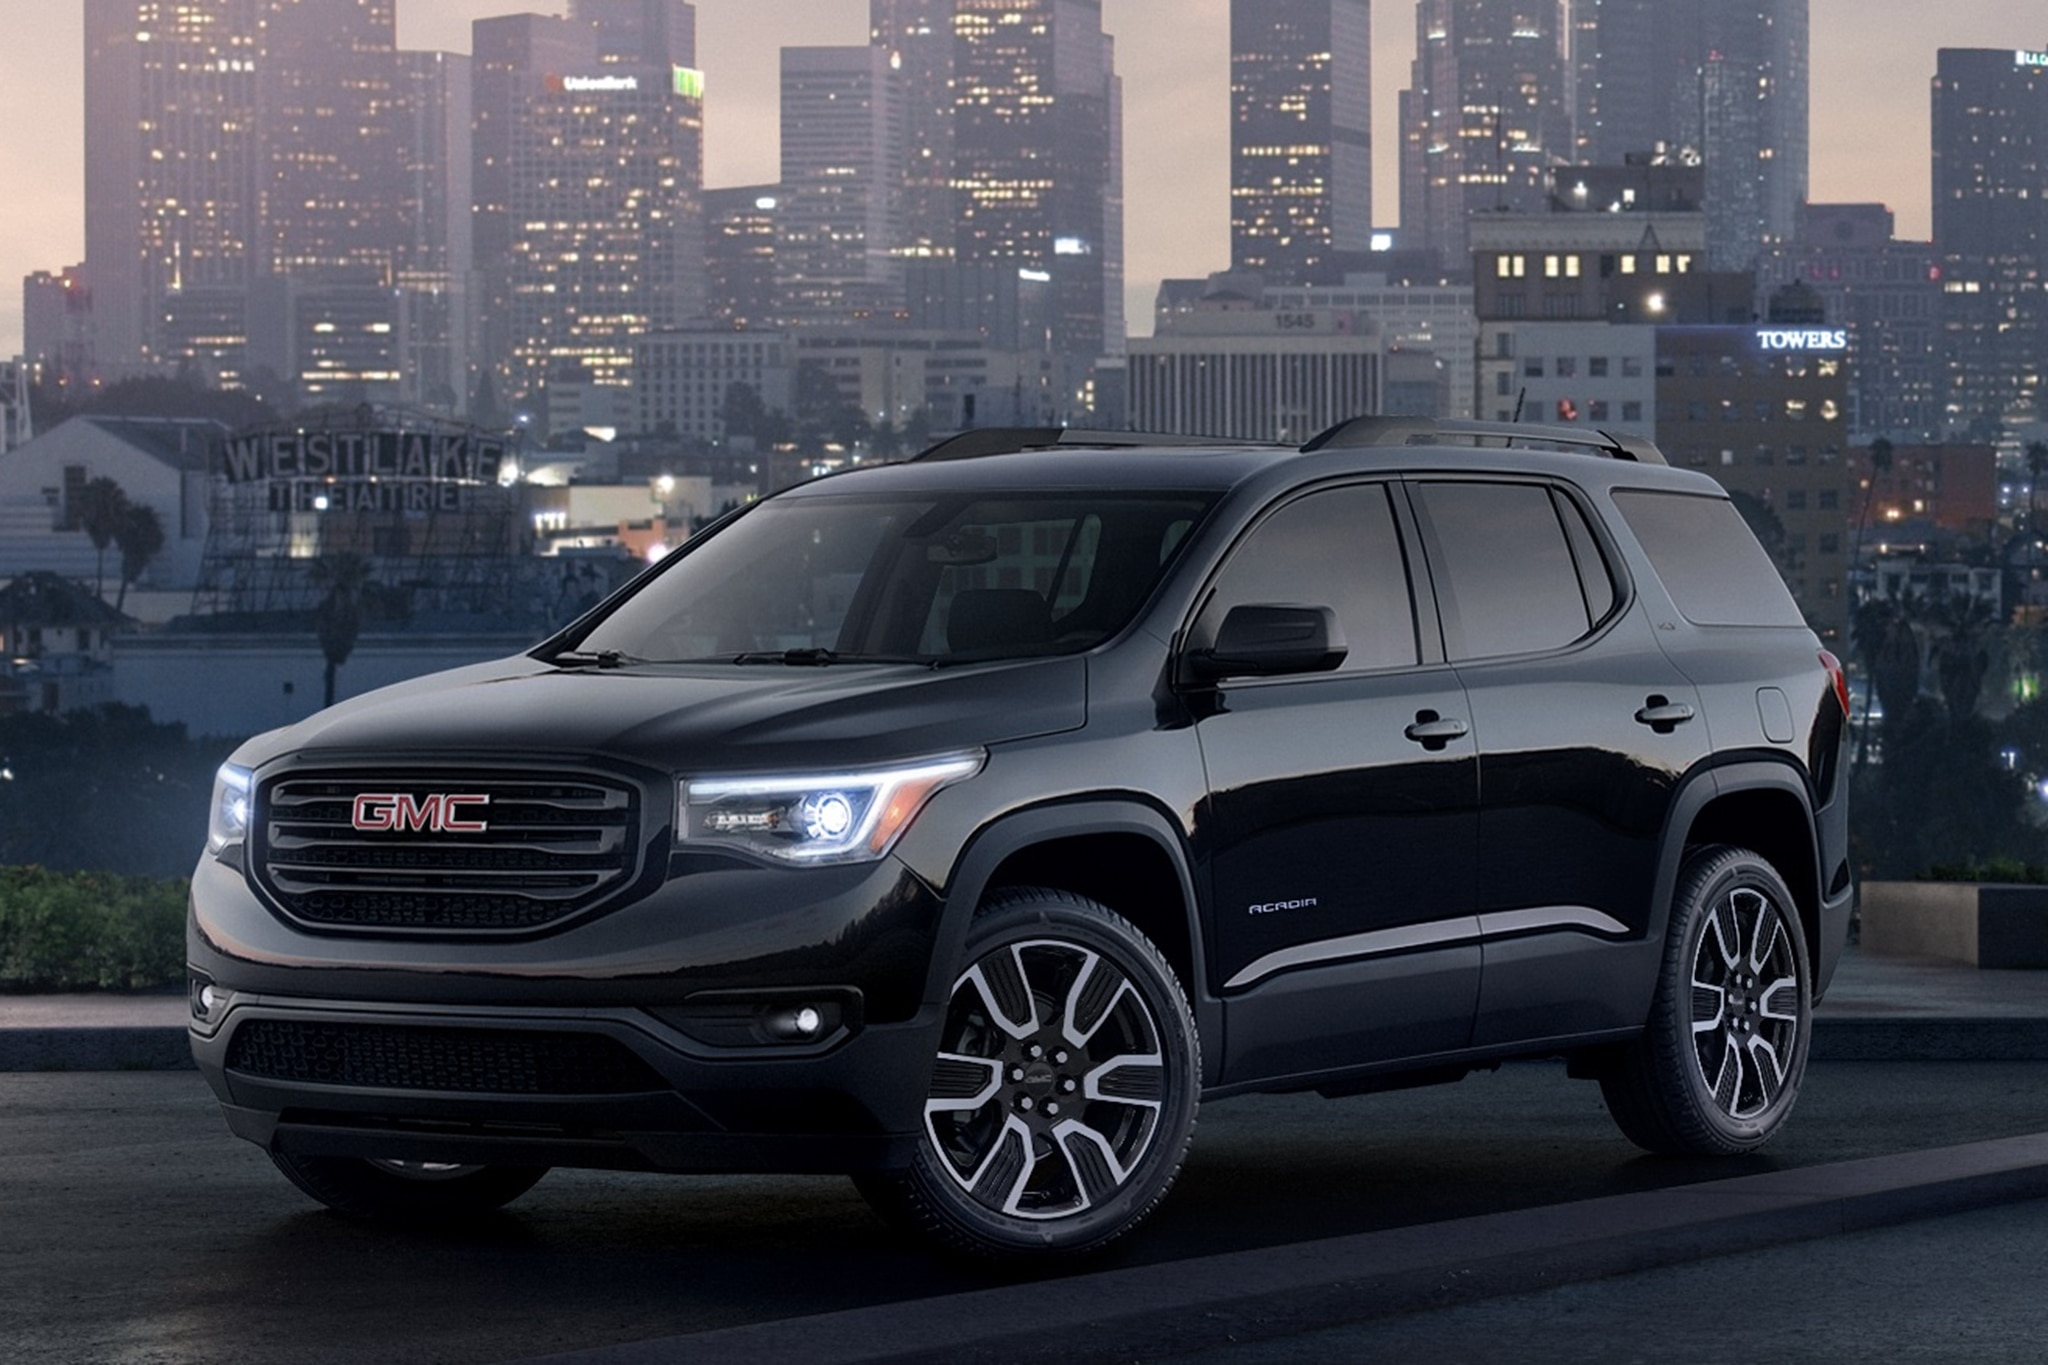 2019 Gmc Acadia And Terrain Sport Black Editions For New York Automobile Magazine